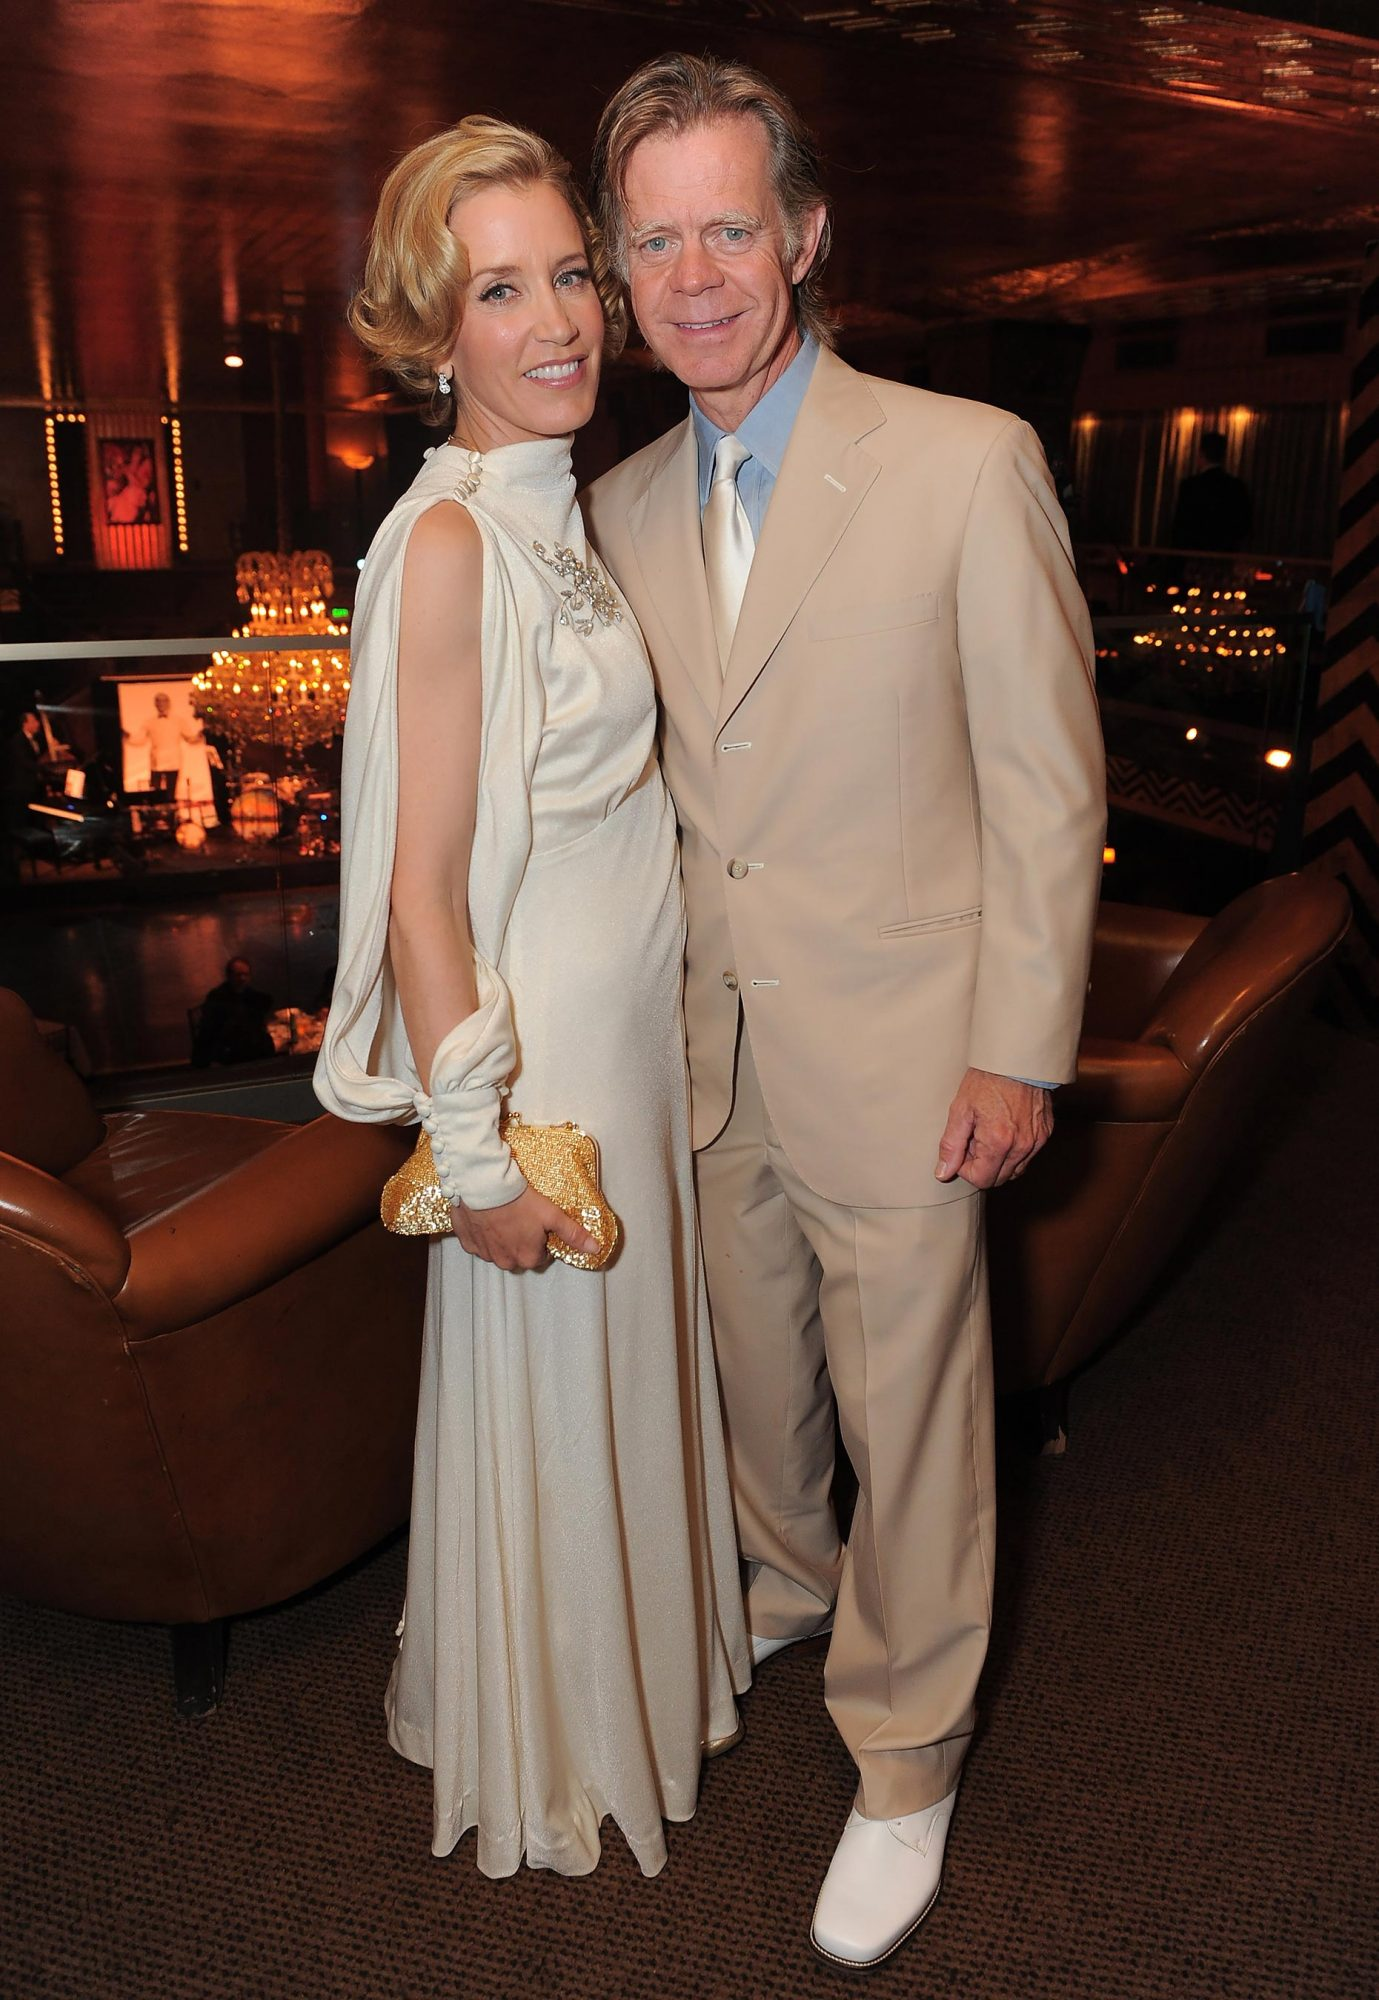 A Diamond Is Forever and Vanity Fair Host An Evening with Felicity Huffman